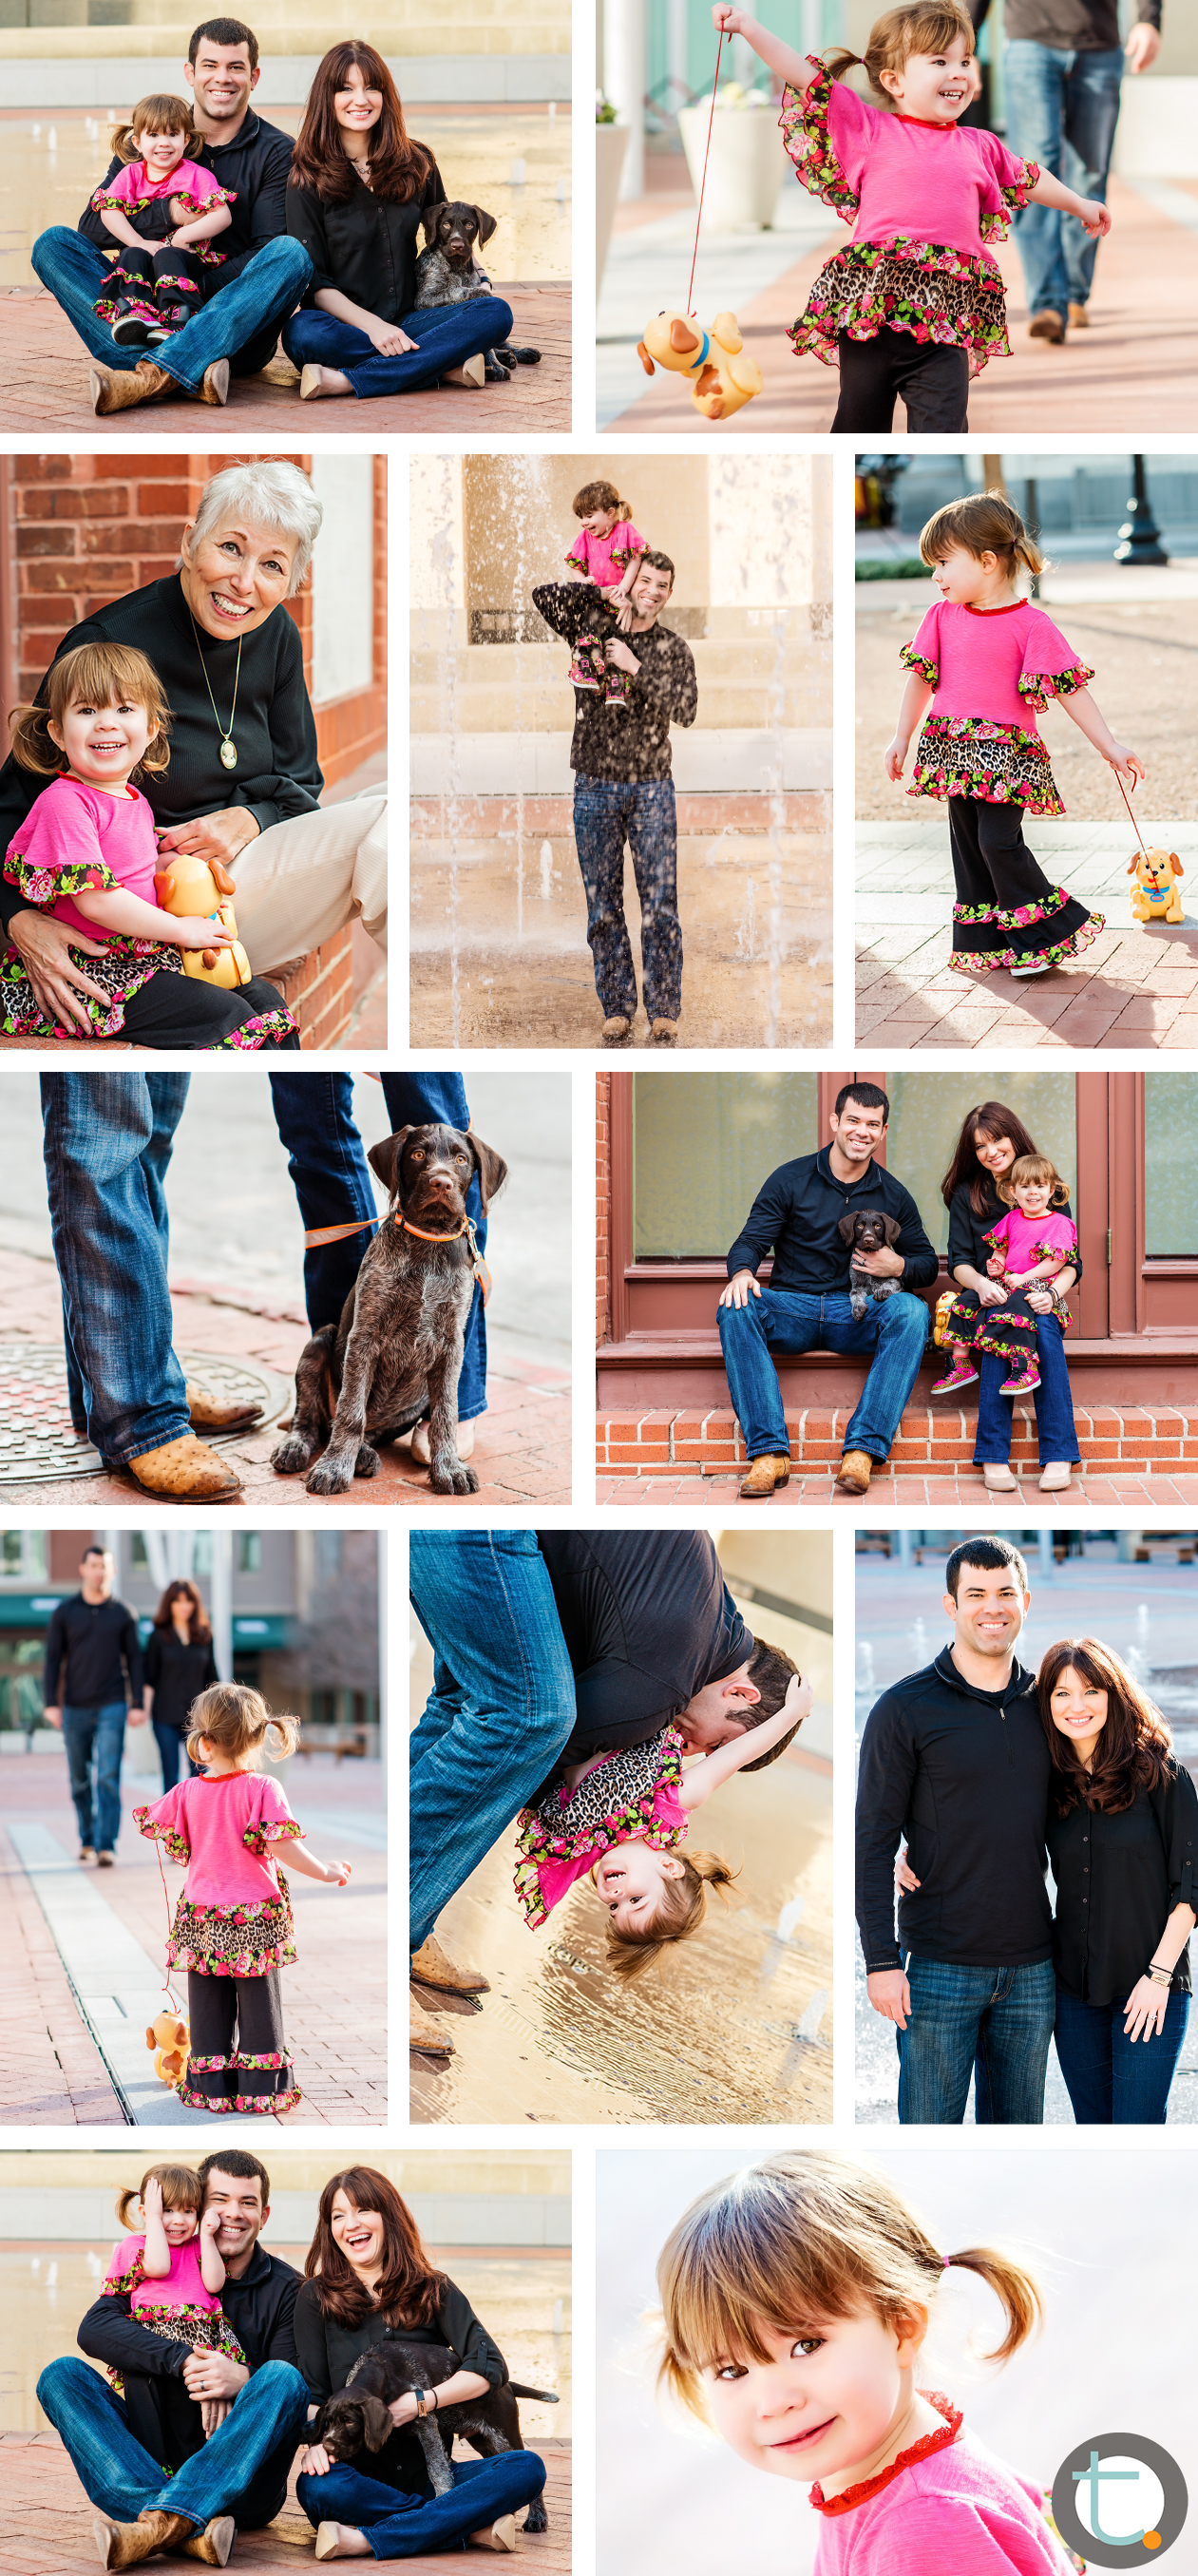 sundancesquare_plaza_fountains_dog_puppy_toddler_ftworth_portraits_tracyallynphotography_familyofthree